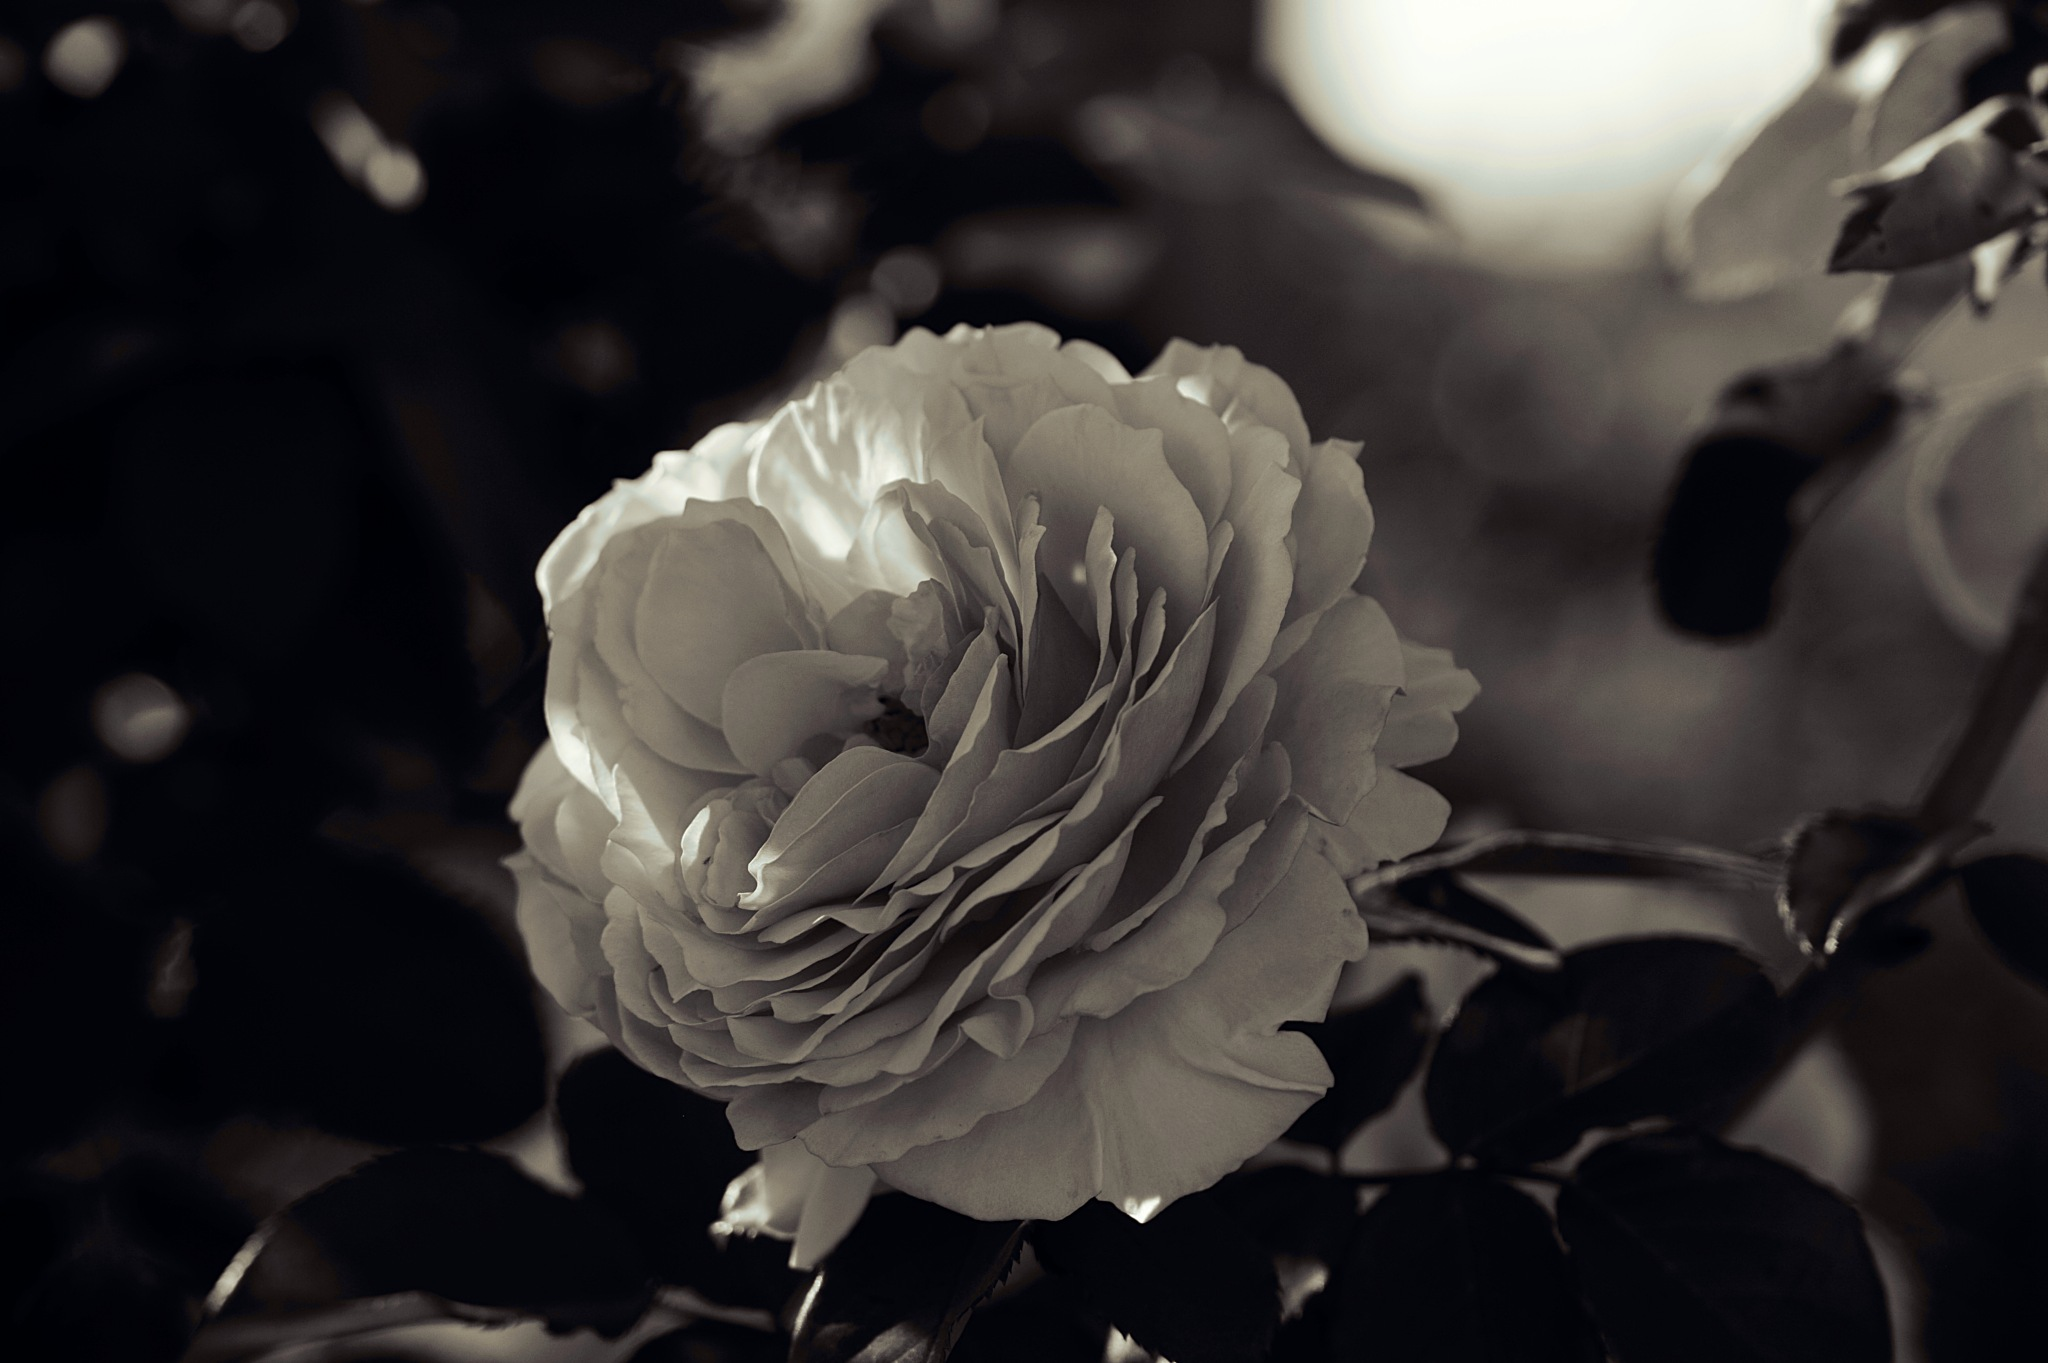 the Rose by Amy Myers